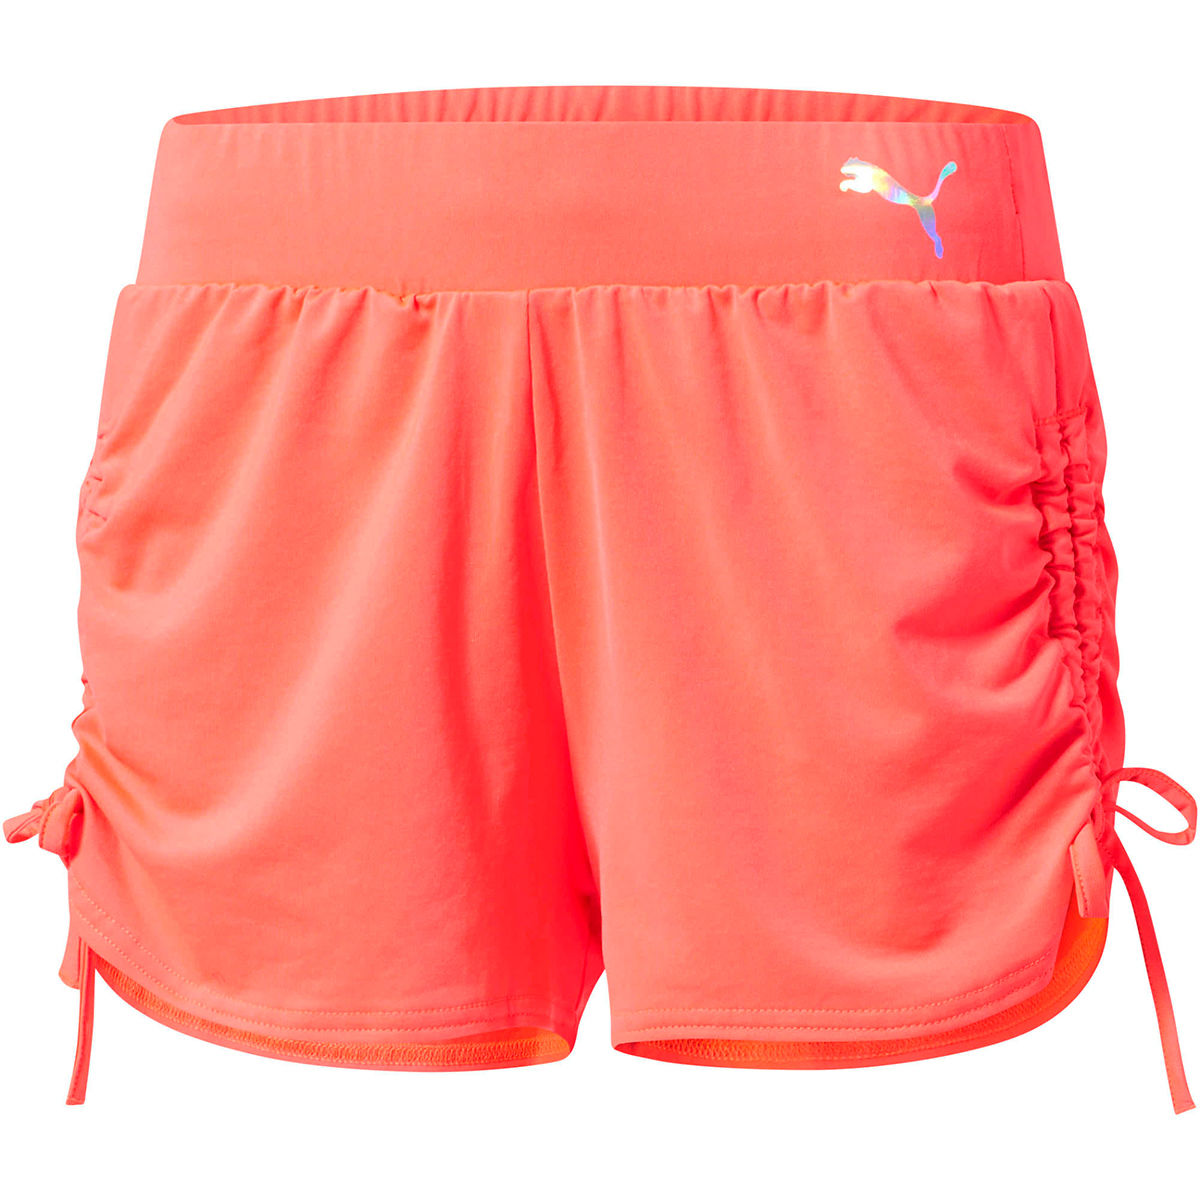 Puma Women's Transition Shorts - Red, S